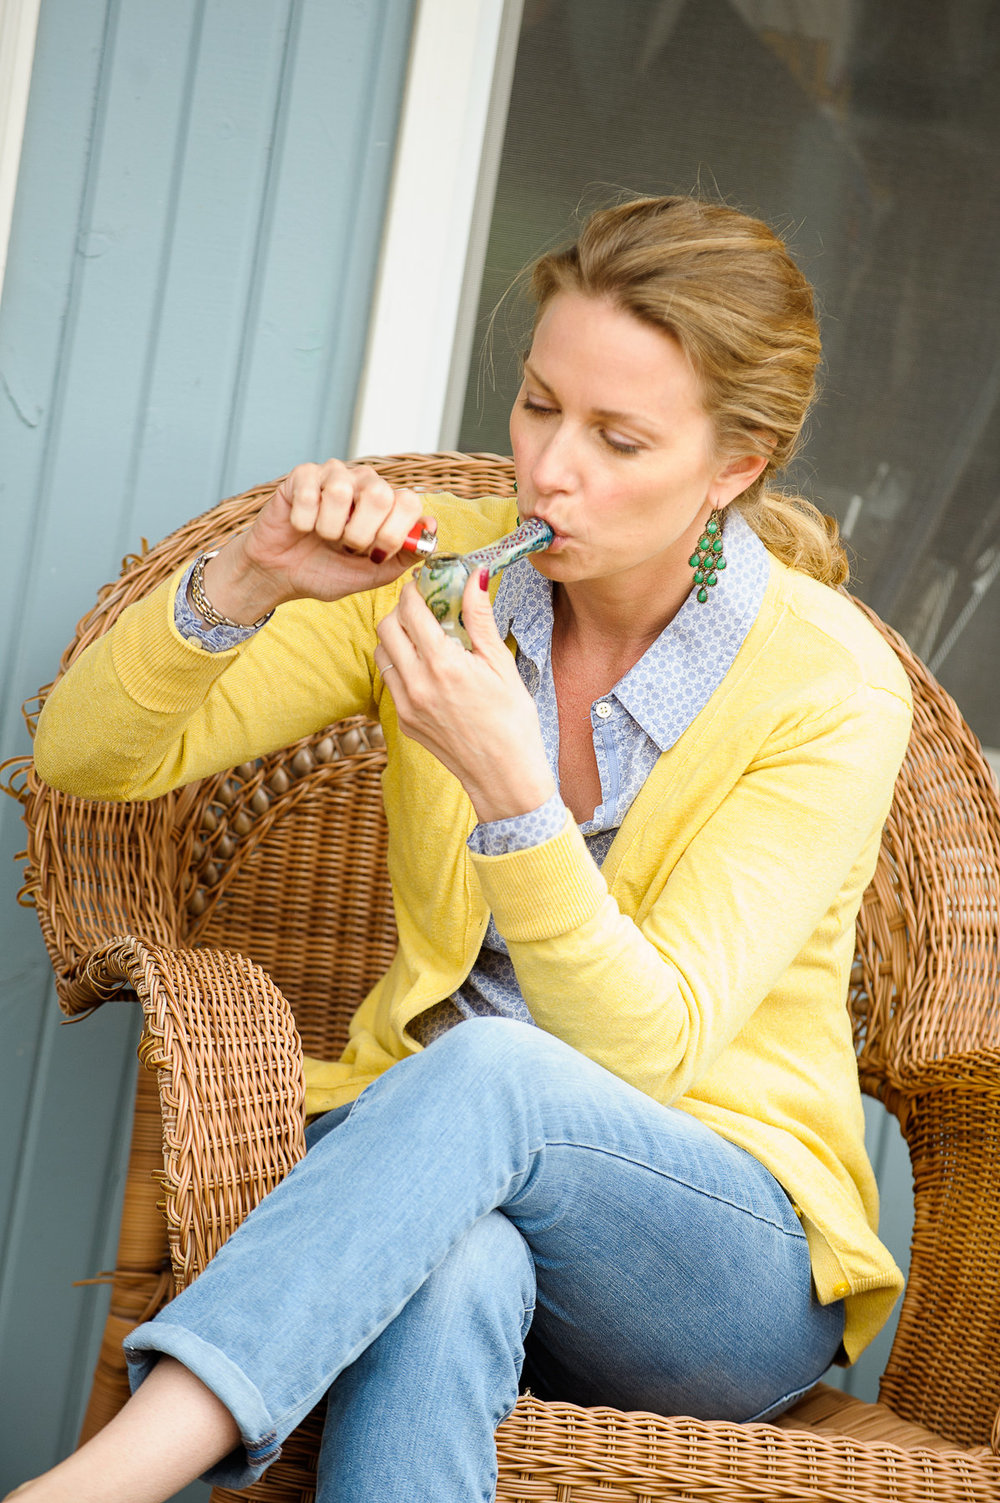 white-female-inhaling-marijuana-pipe_4800.jpg